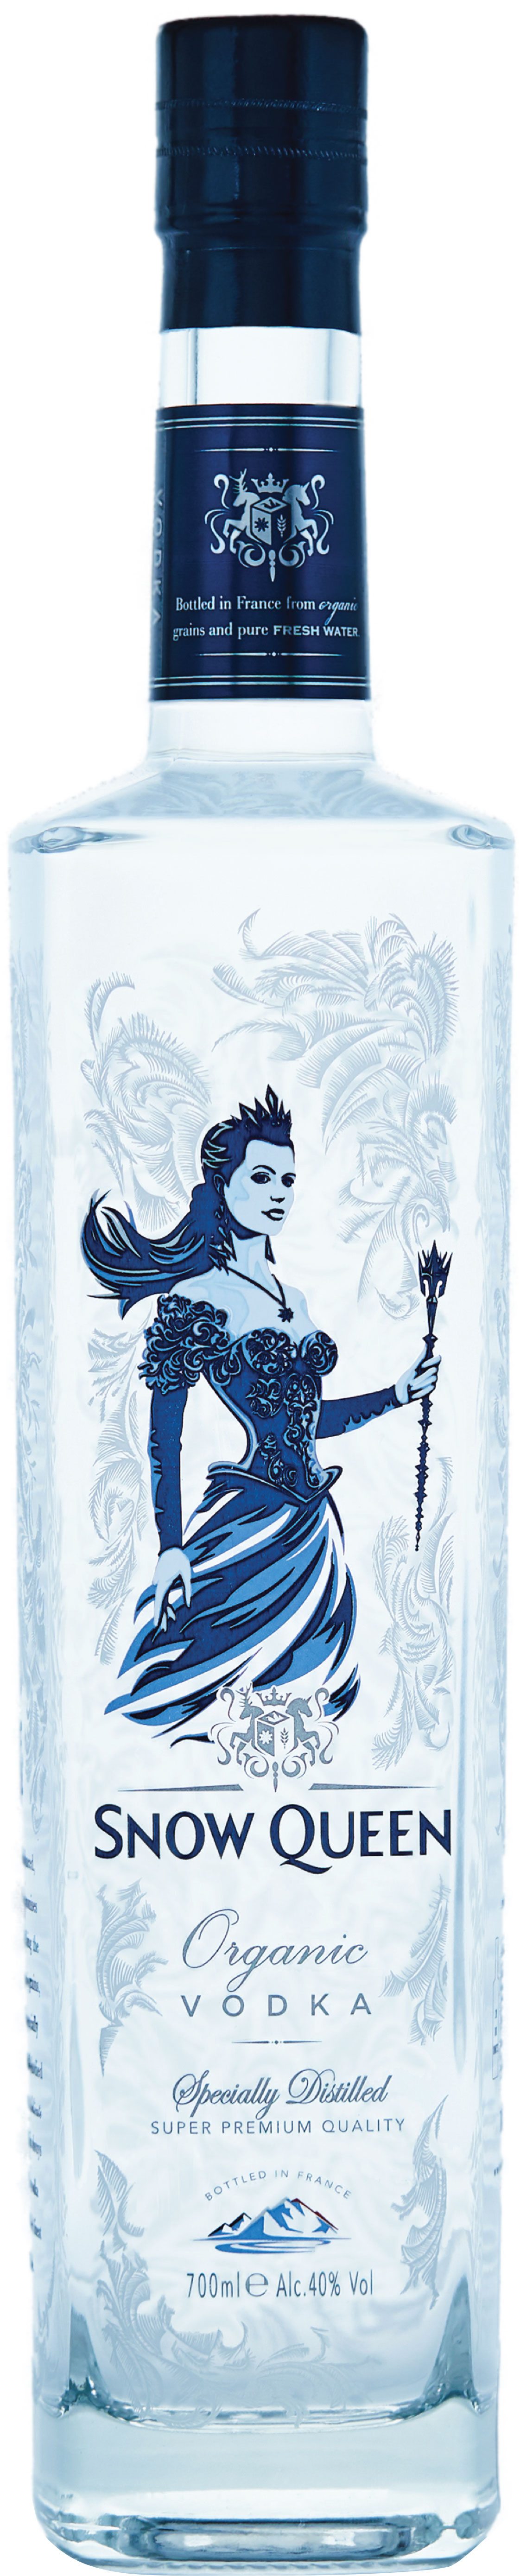 Snow Queen Vodka 70cl Bottle